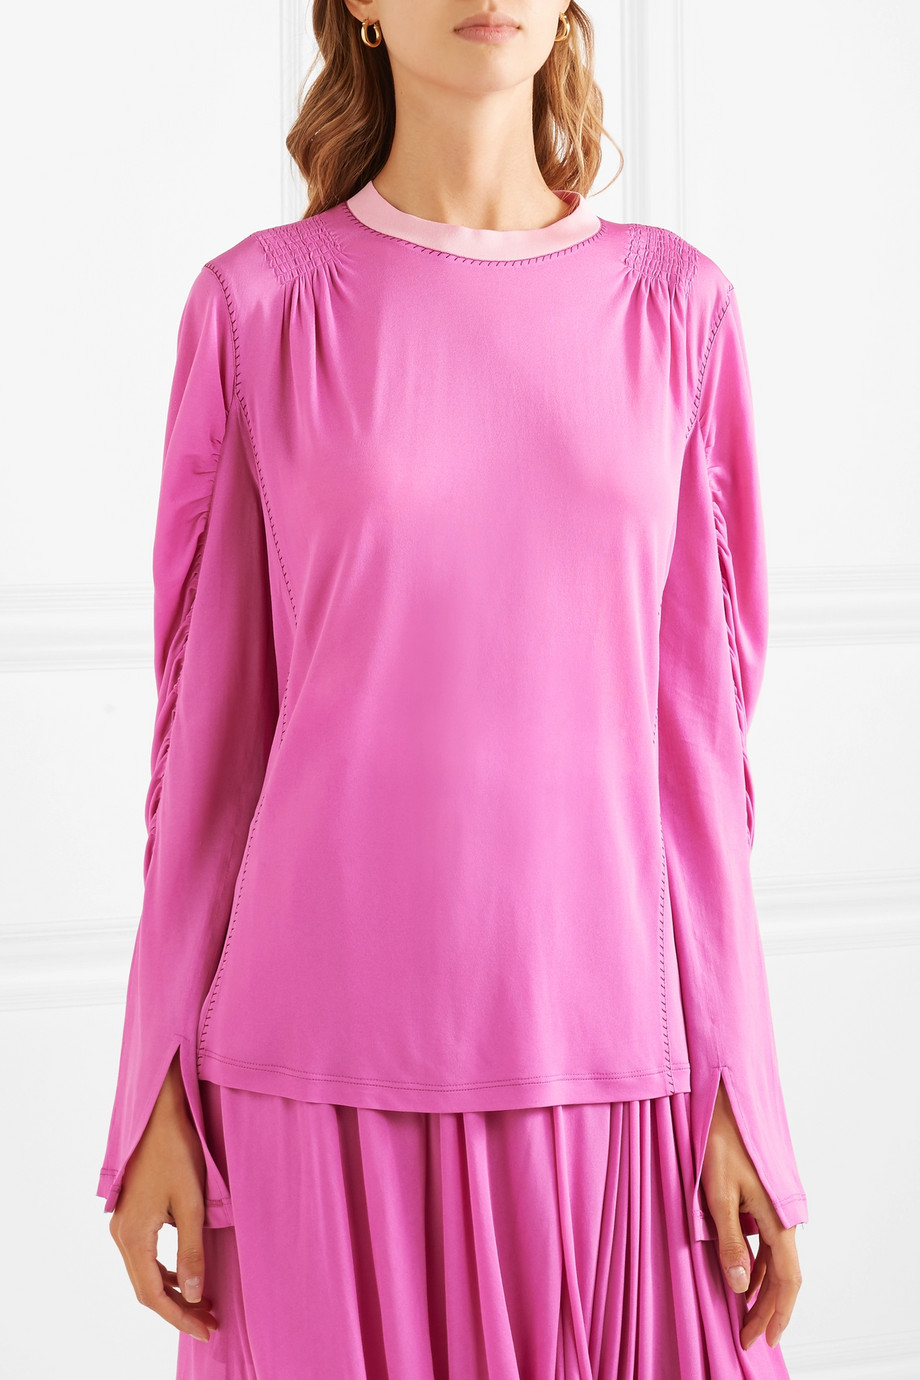 Satin blouse Chloé buy Satin blouse Chloé internet shop